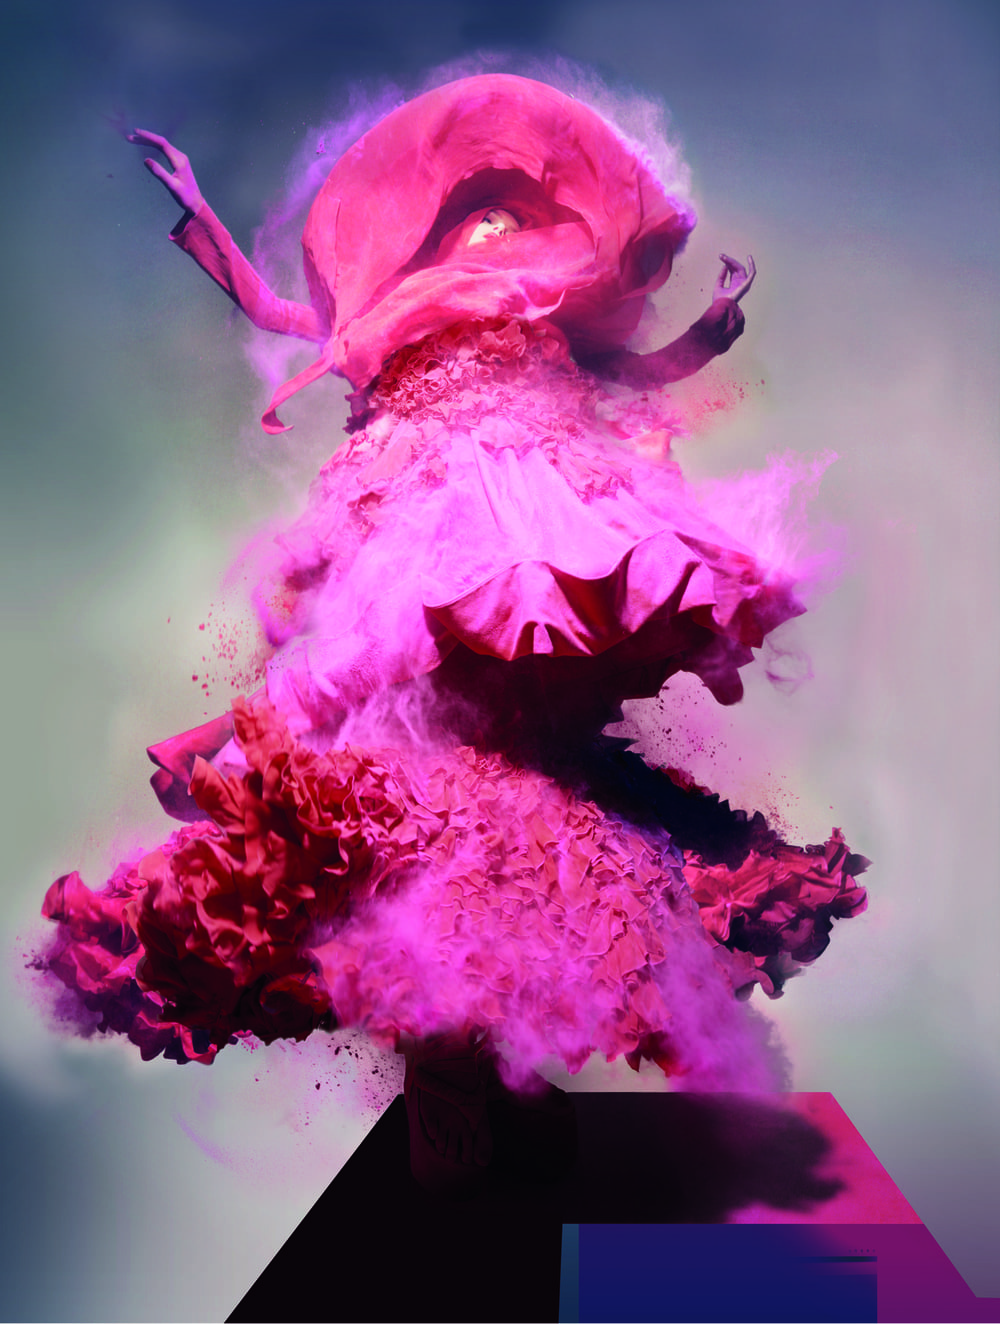 Nick Knight, Lily, 2008. Courtesy of Nick Knight